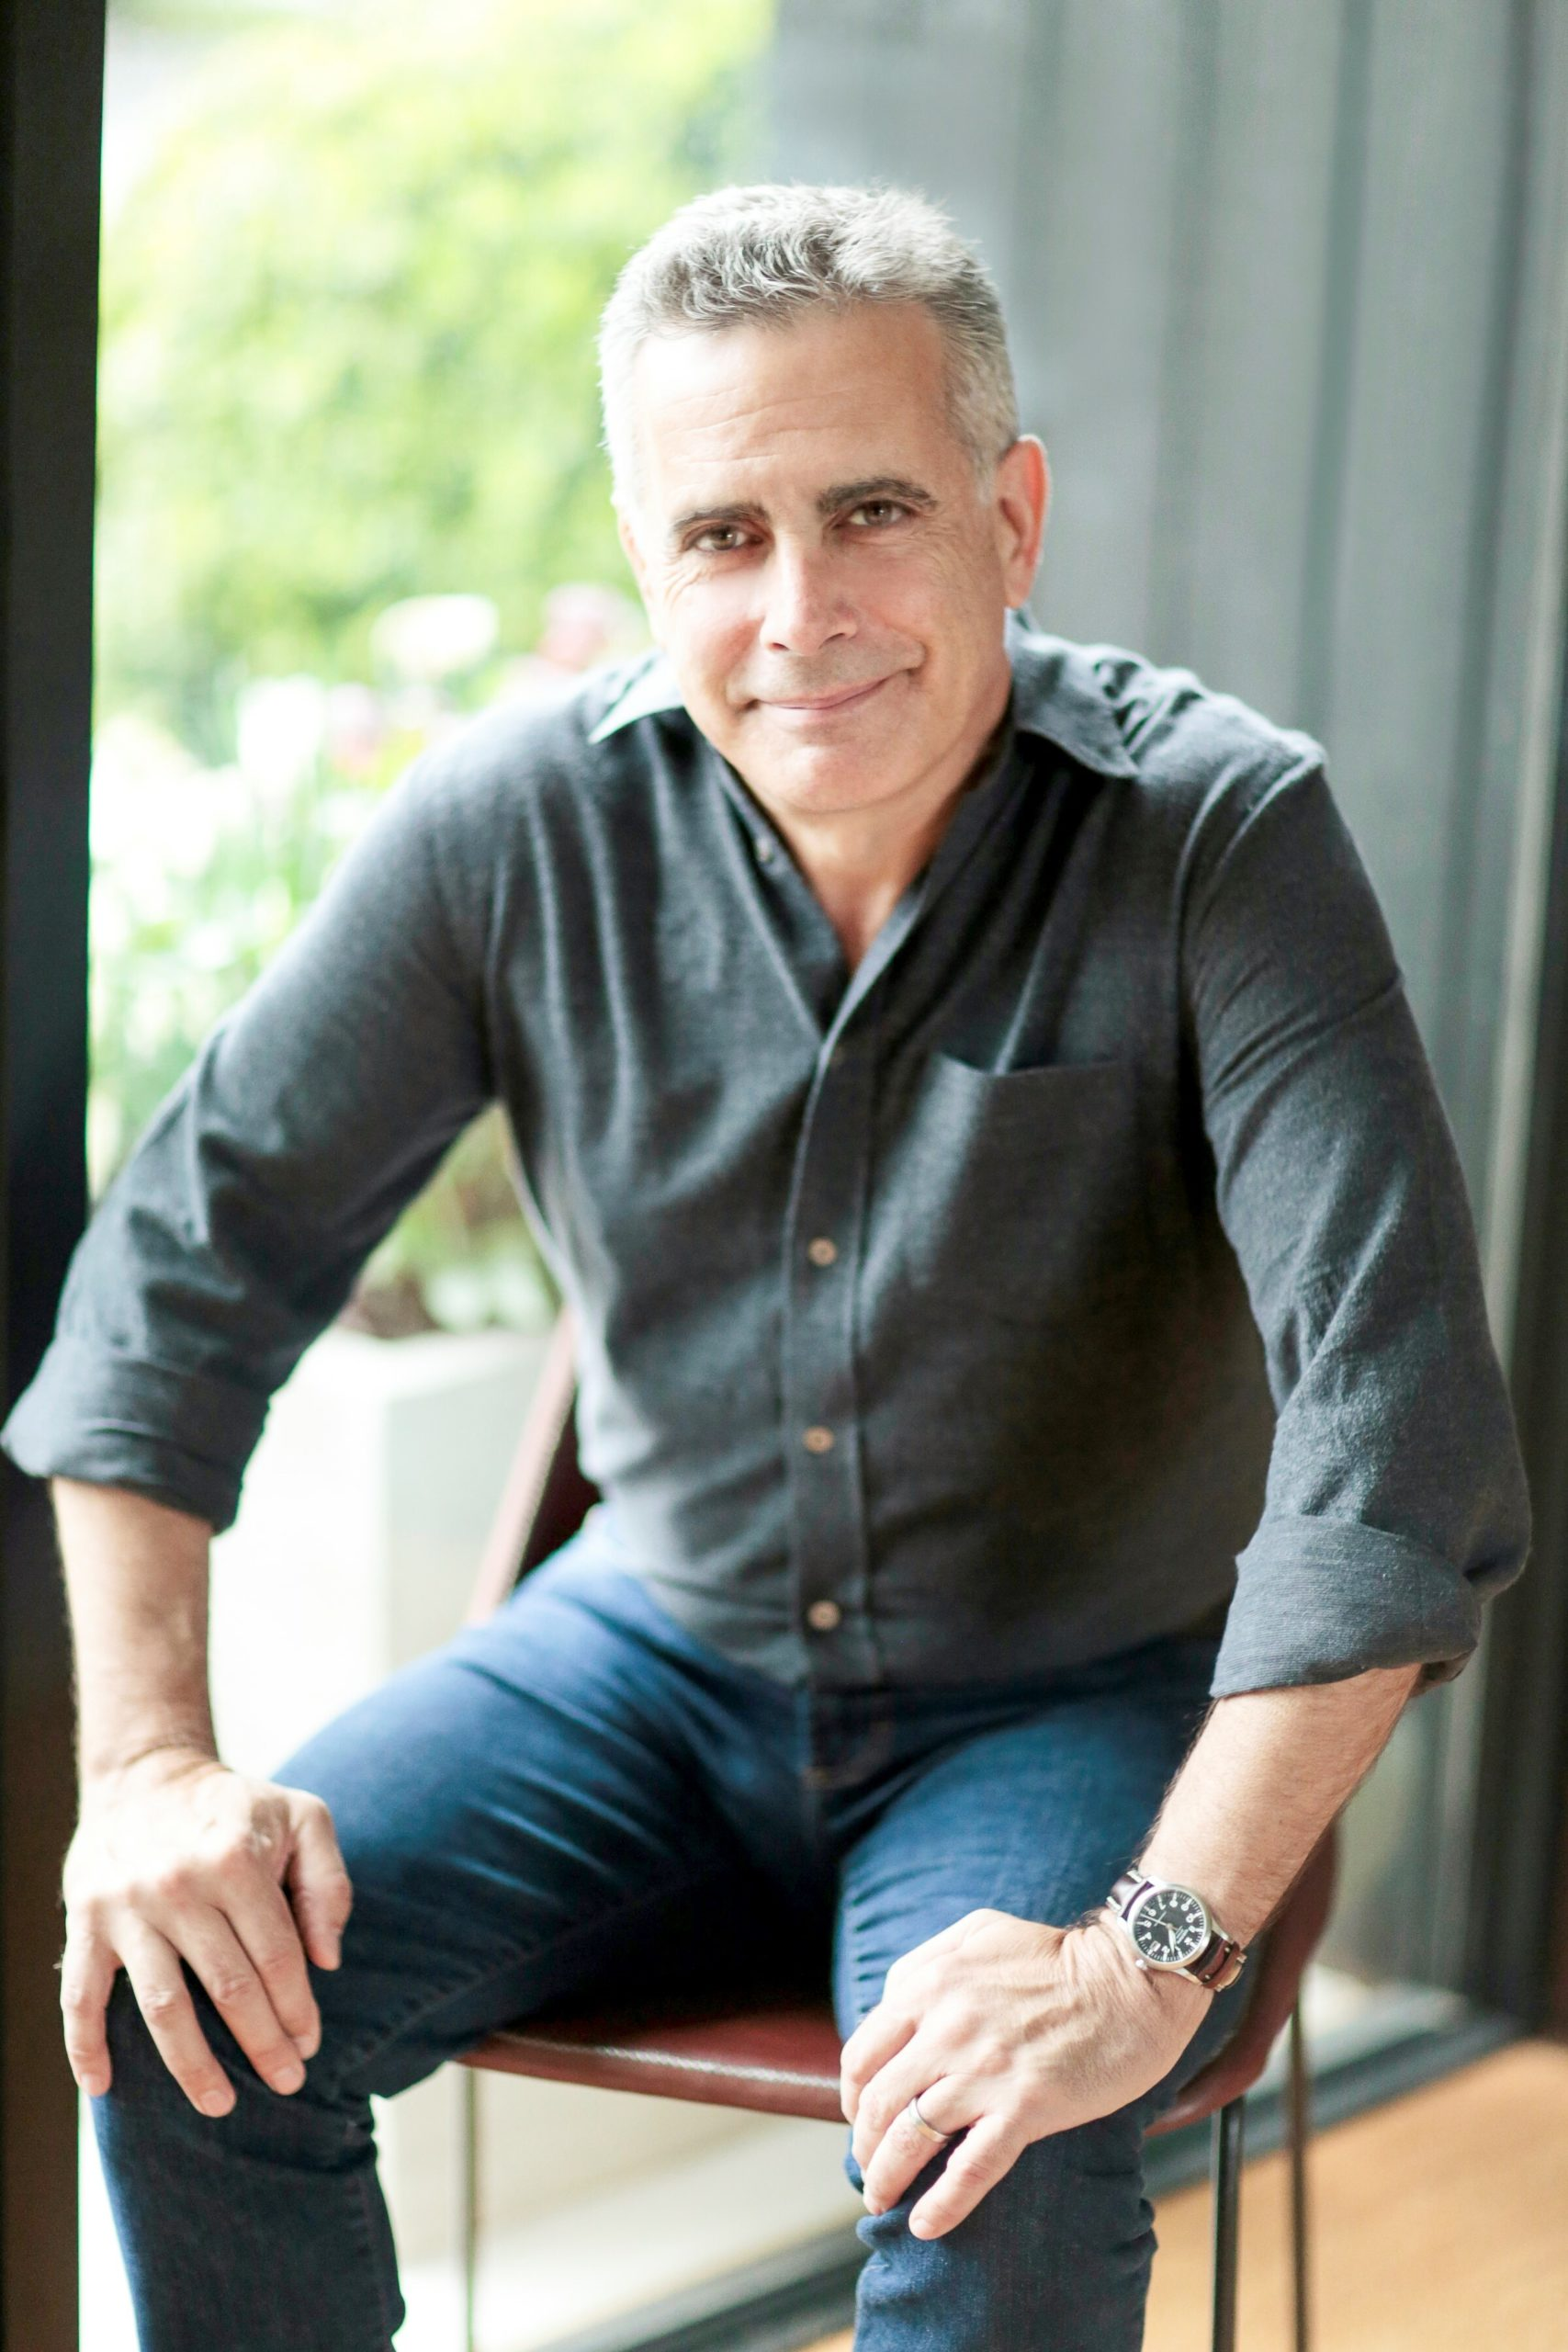 Christopher LaGuardia is the managing principal and founder of the LaGuardia Design Group in Water Mill.